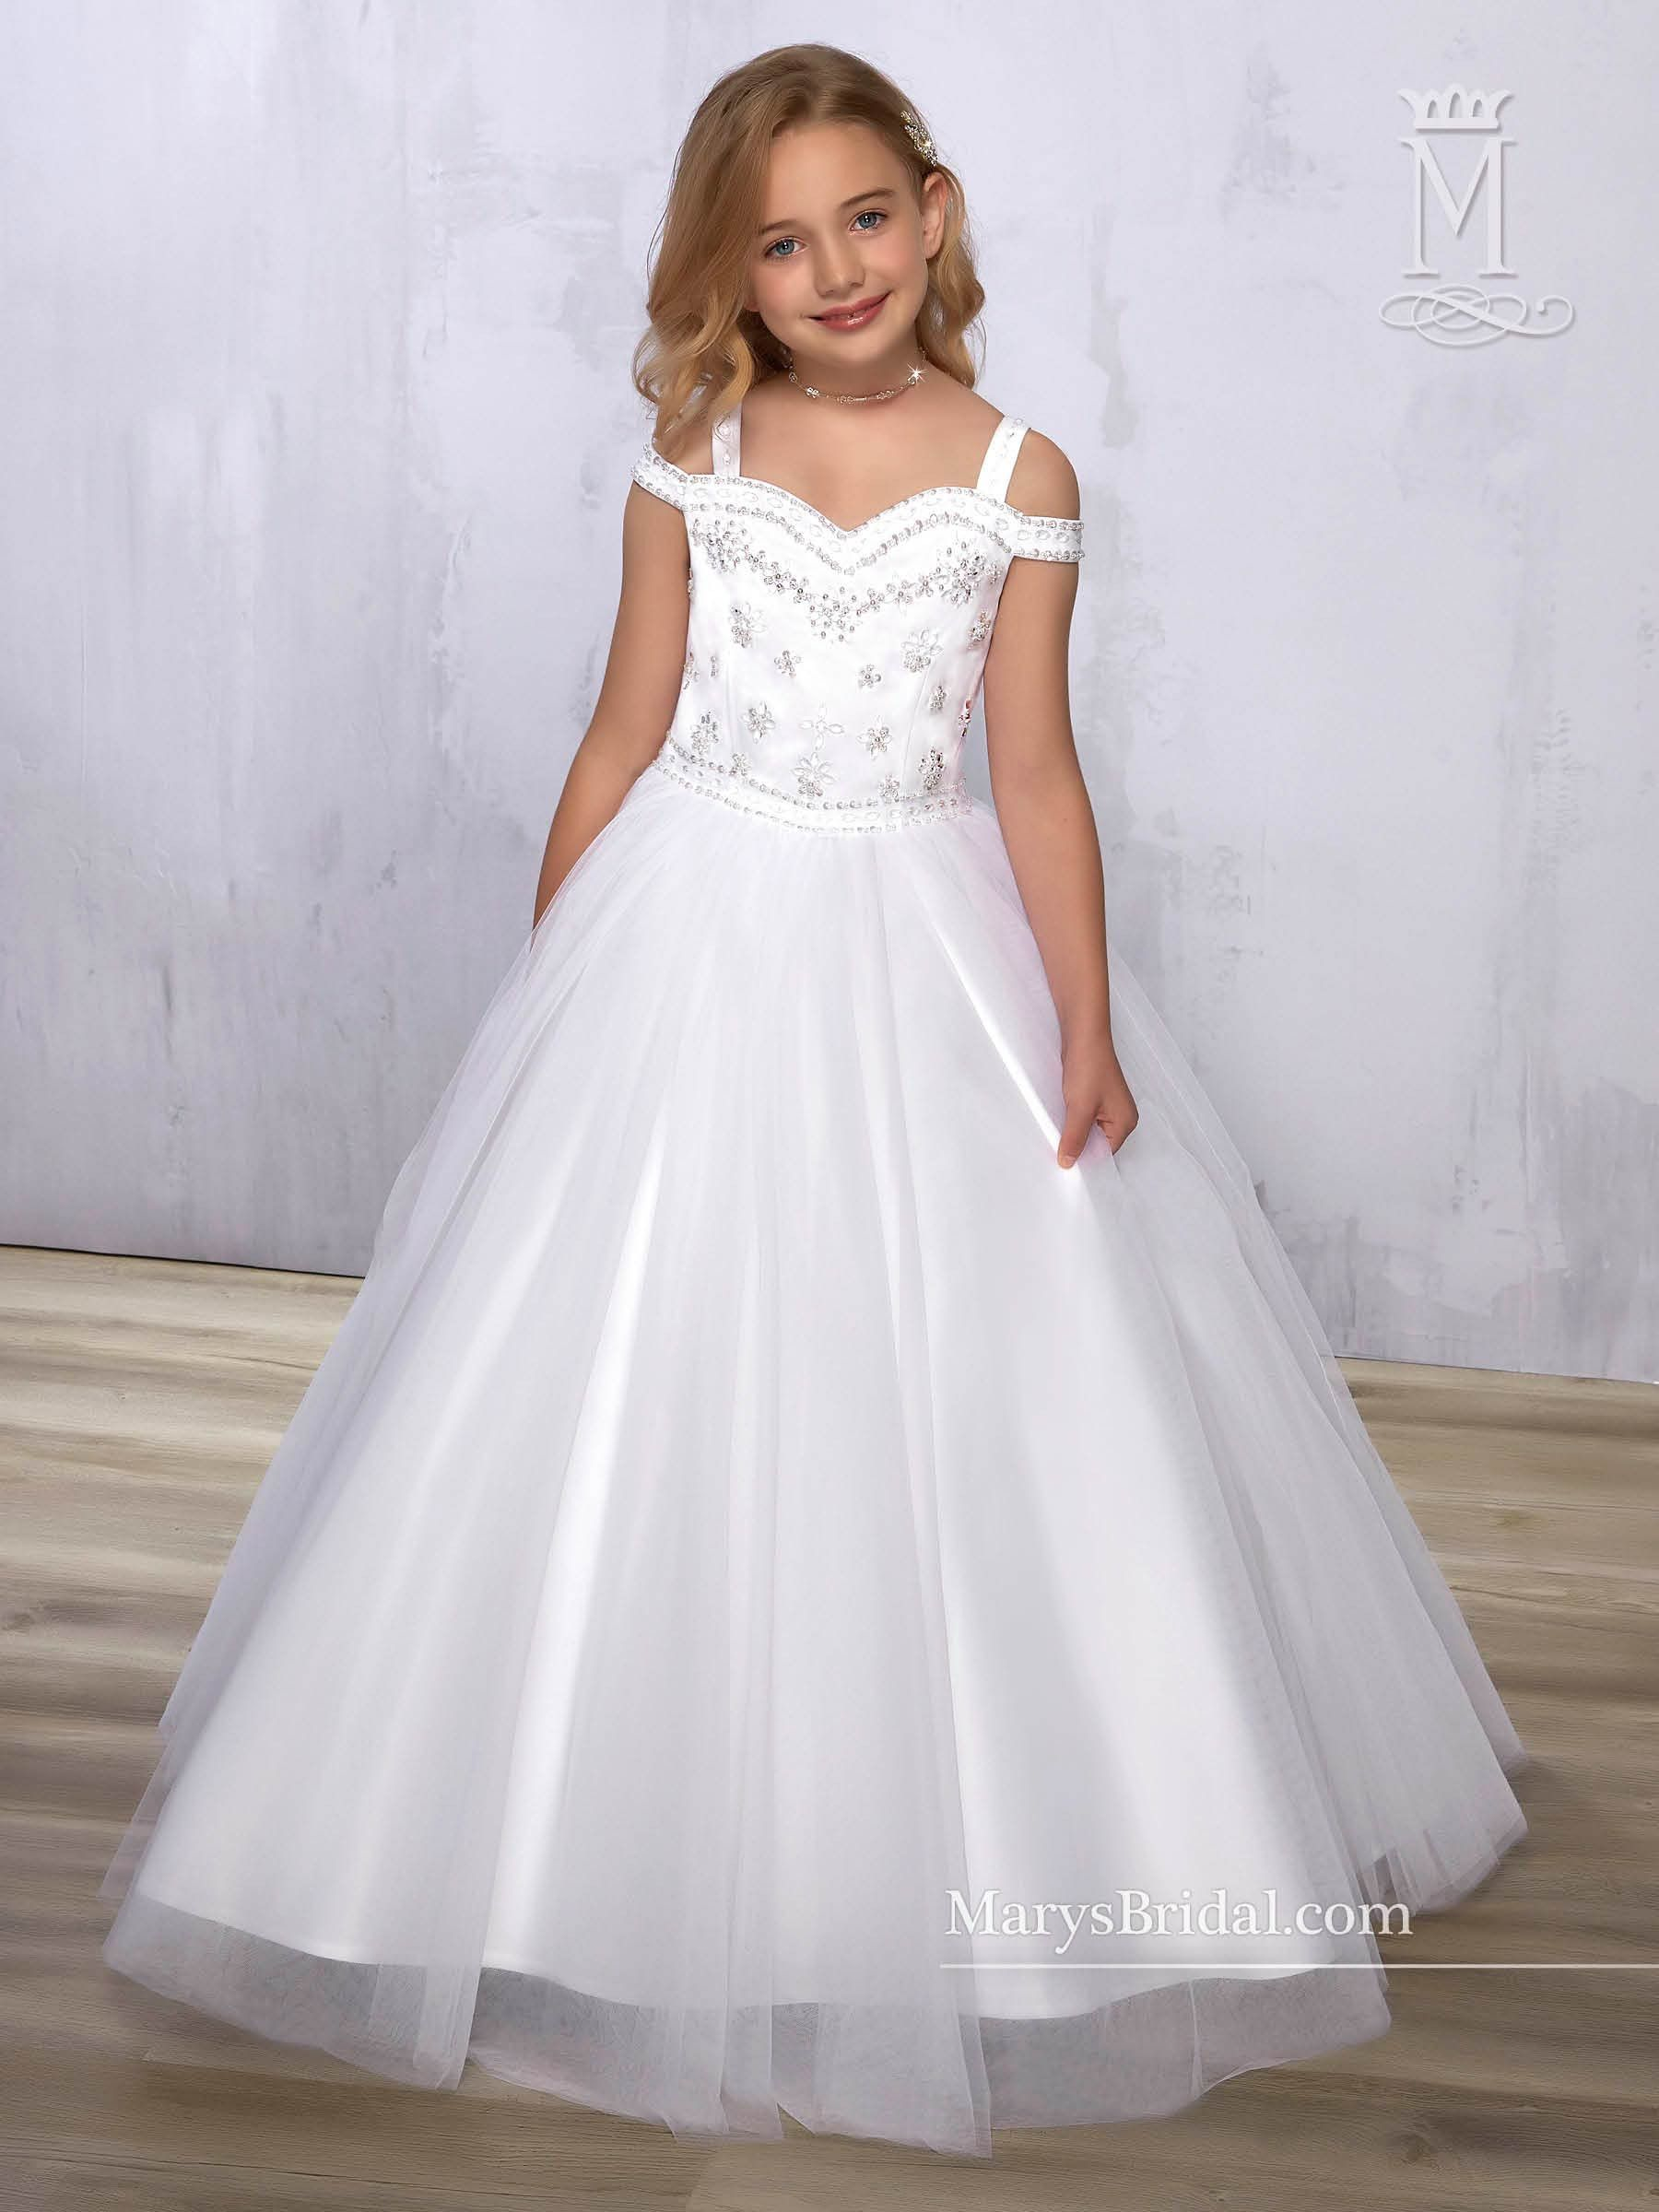 53e27acaa Cold Shoulder Flower Girl Dress by Mary s Bridal Cupids F572 ...